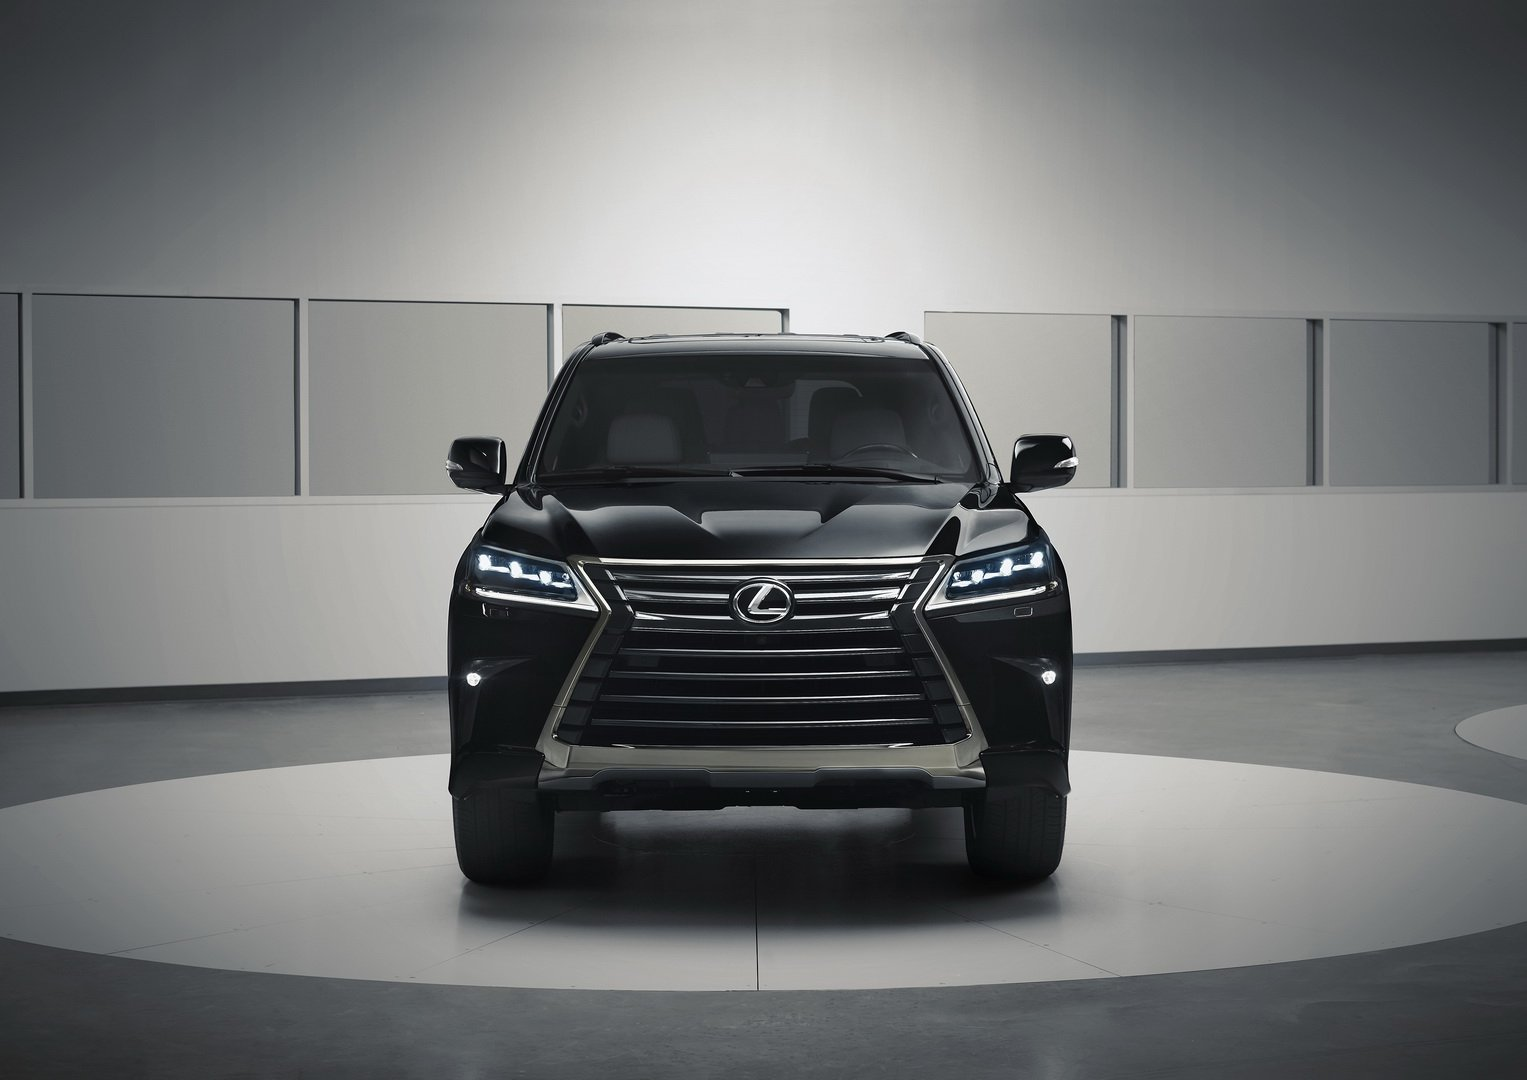 Lexus LX Inspiration Series (2)